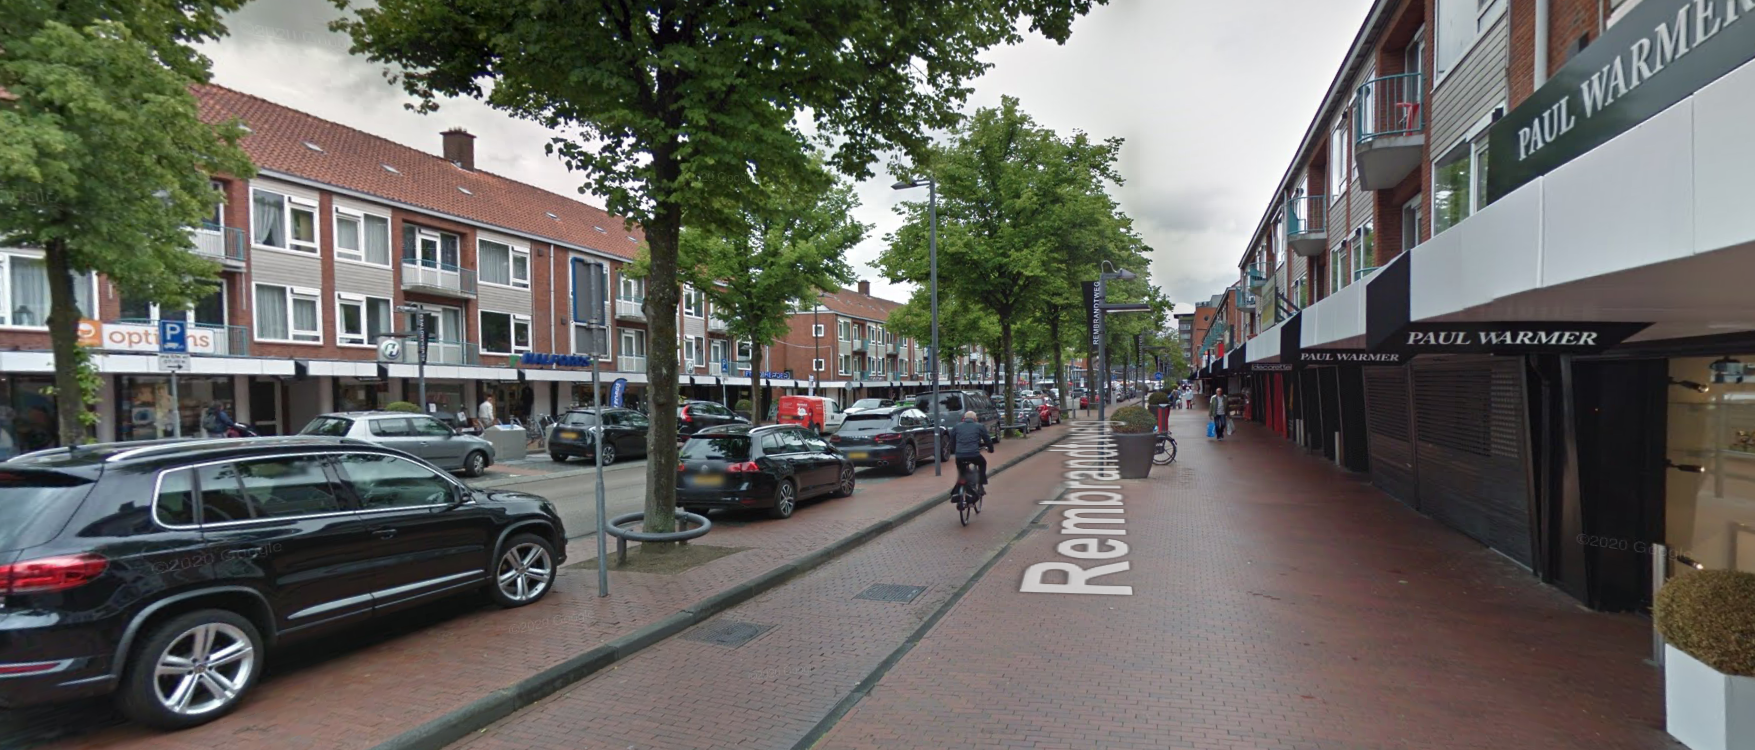 In the Netherlands bike lanes are isolated from main traffic by parked cars.